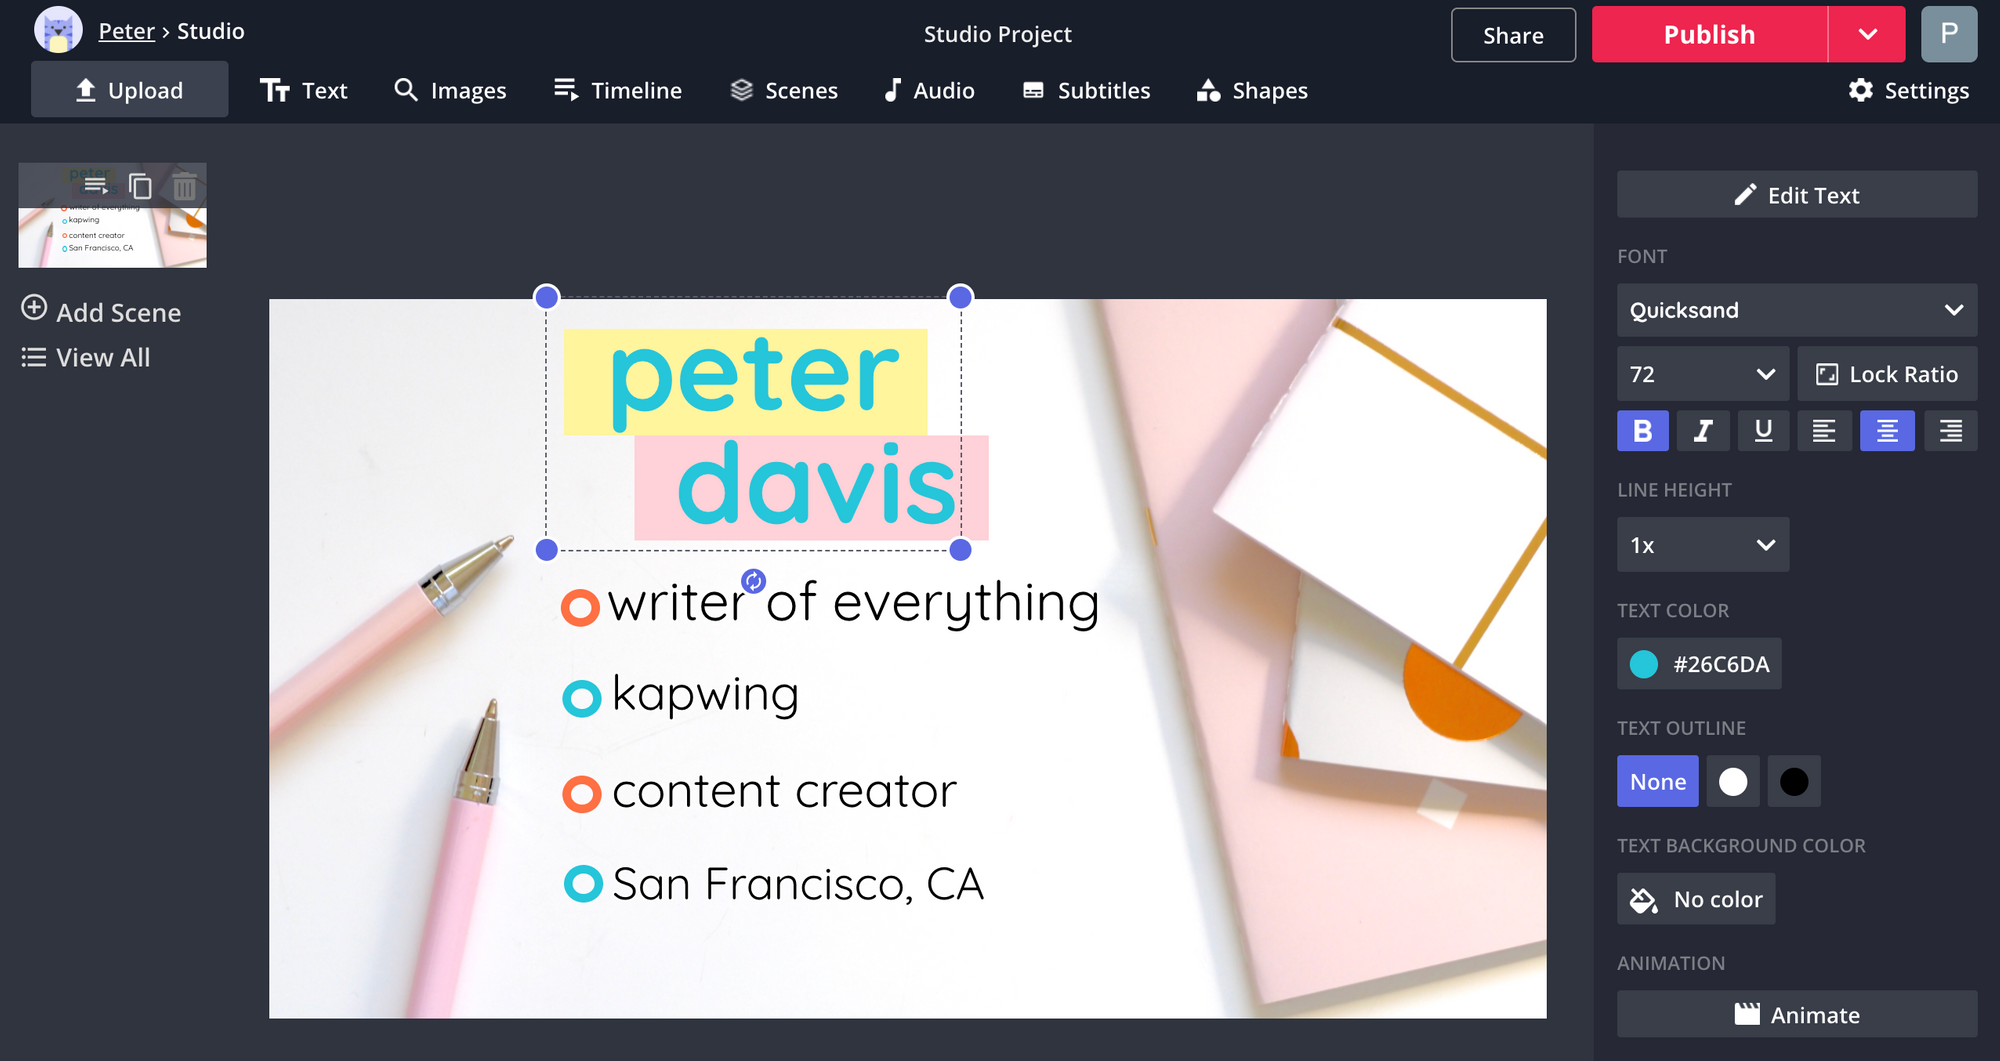 A screenshot from the Kapwing Studio, showing text editing techniques.